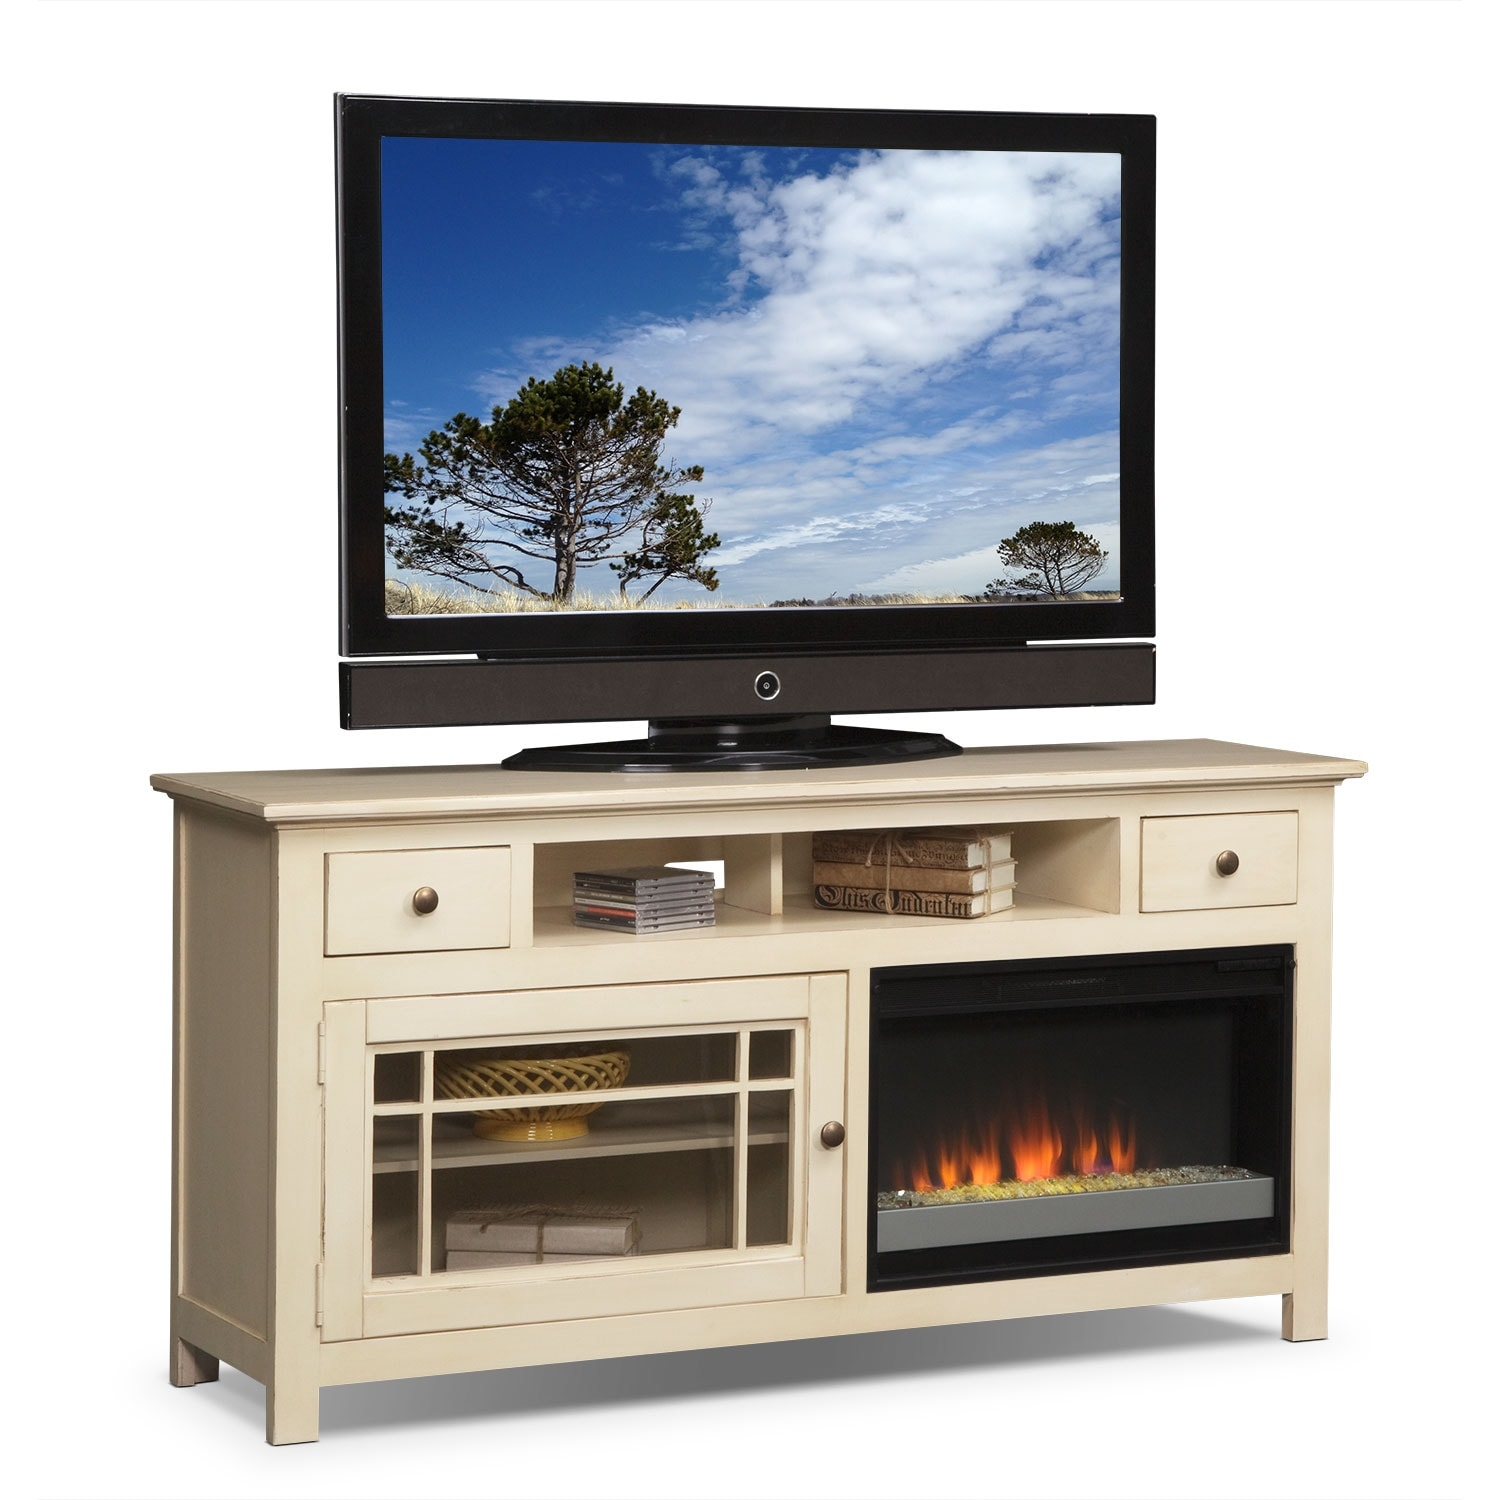 Merrick 64 Fireplace Tv Stand With Contemporary Insert White Value City Furniture